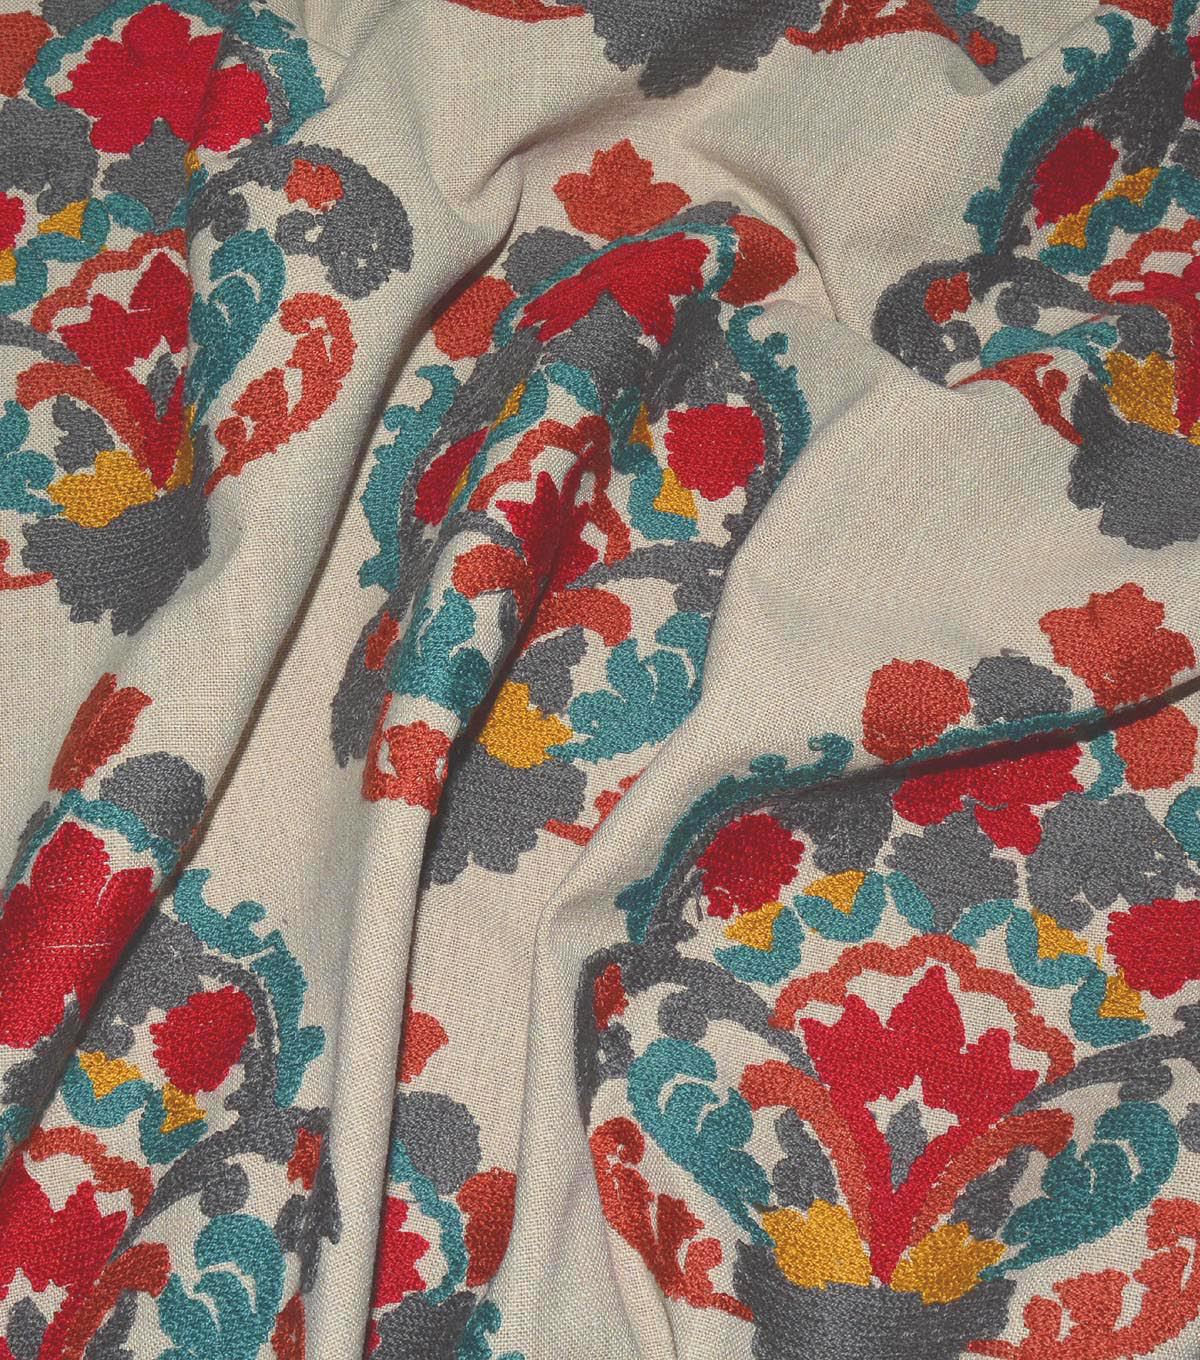 Waverly Upholstery Fabric 13x13\u0022 Swatch-Folk Lure Emb Jewel